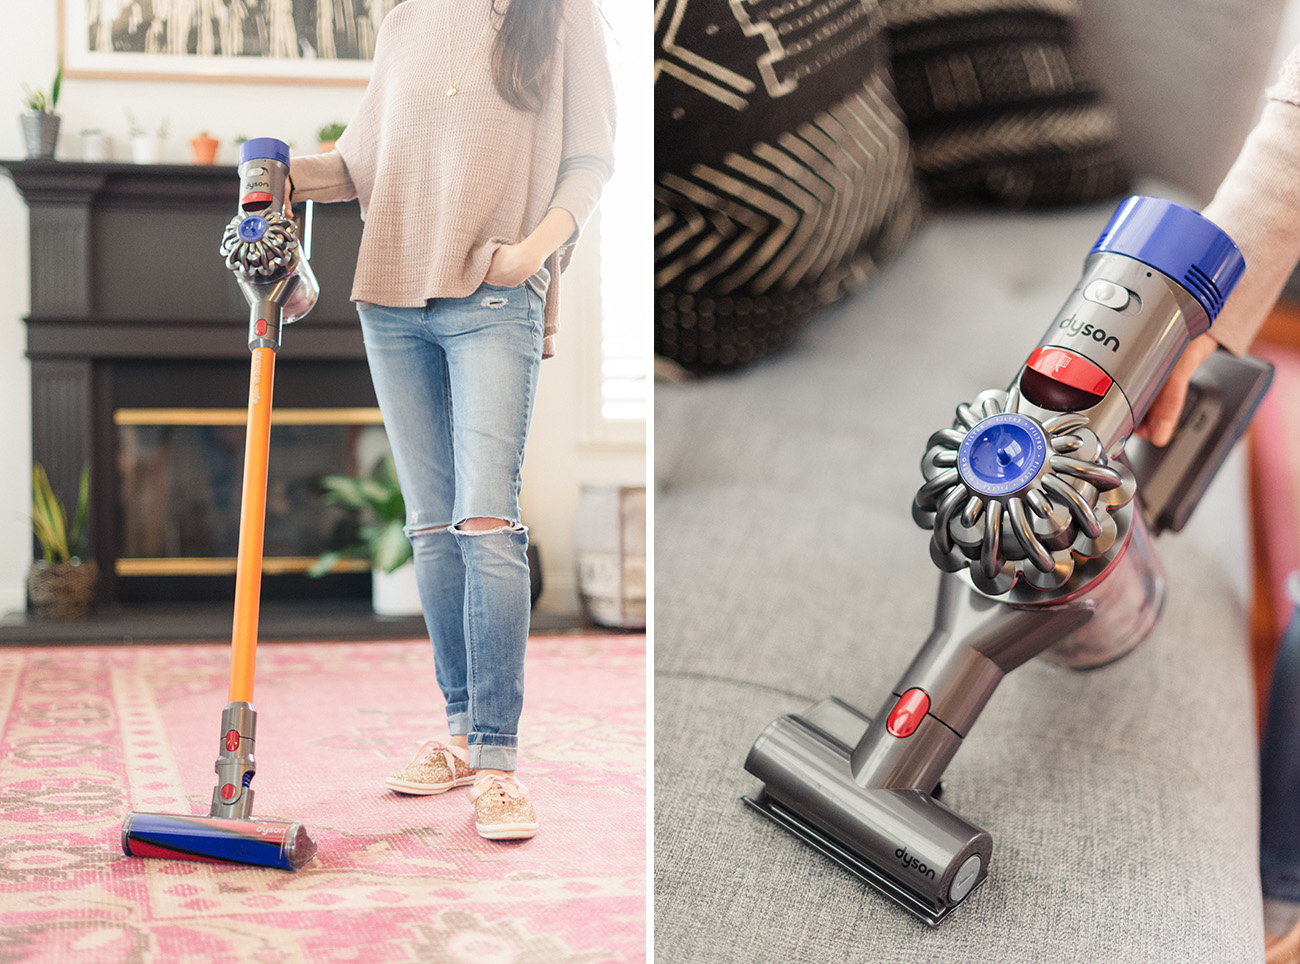 dyson vaccum from Bed Bath & Beyond